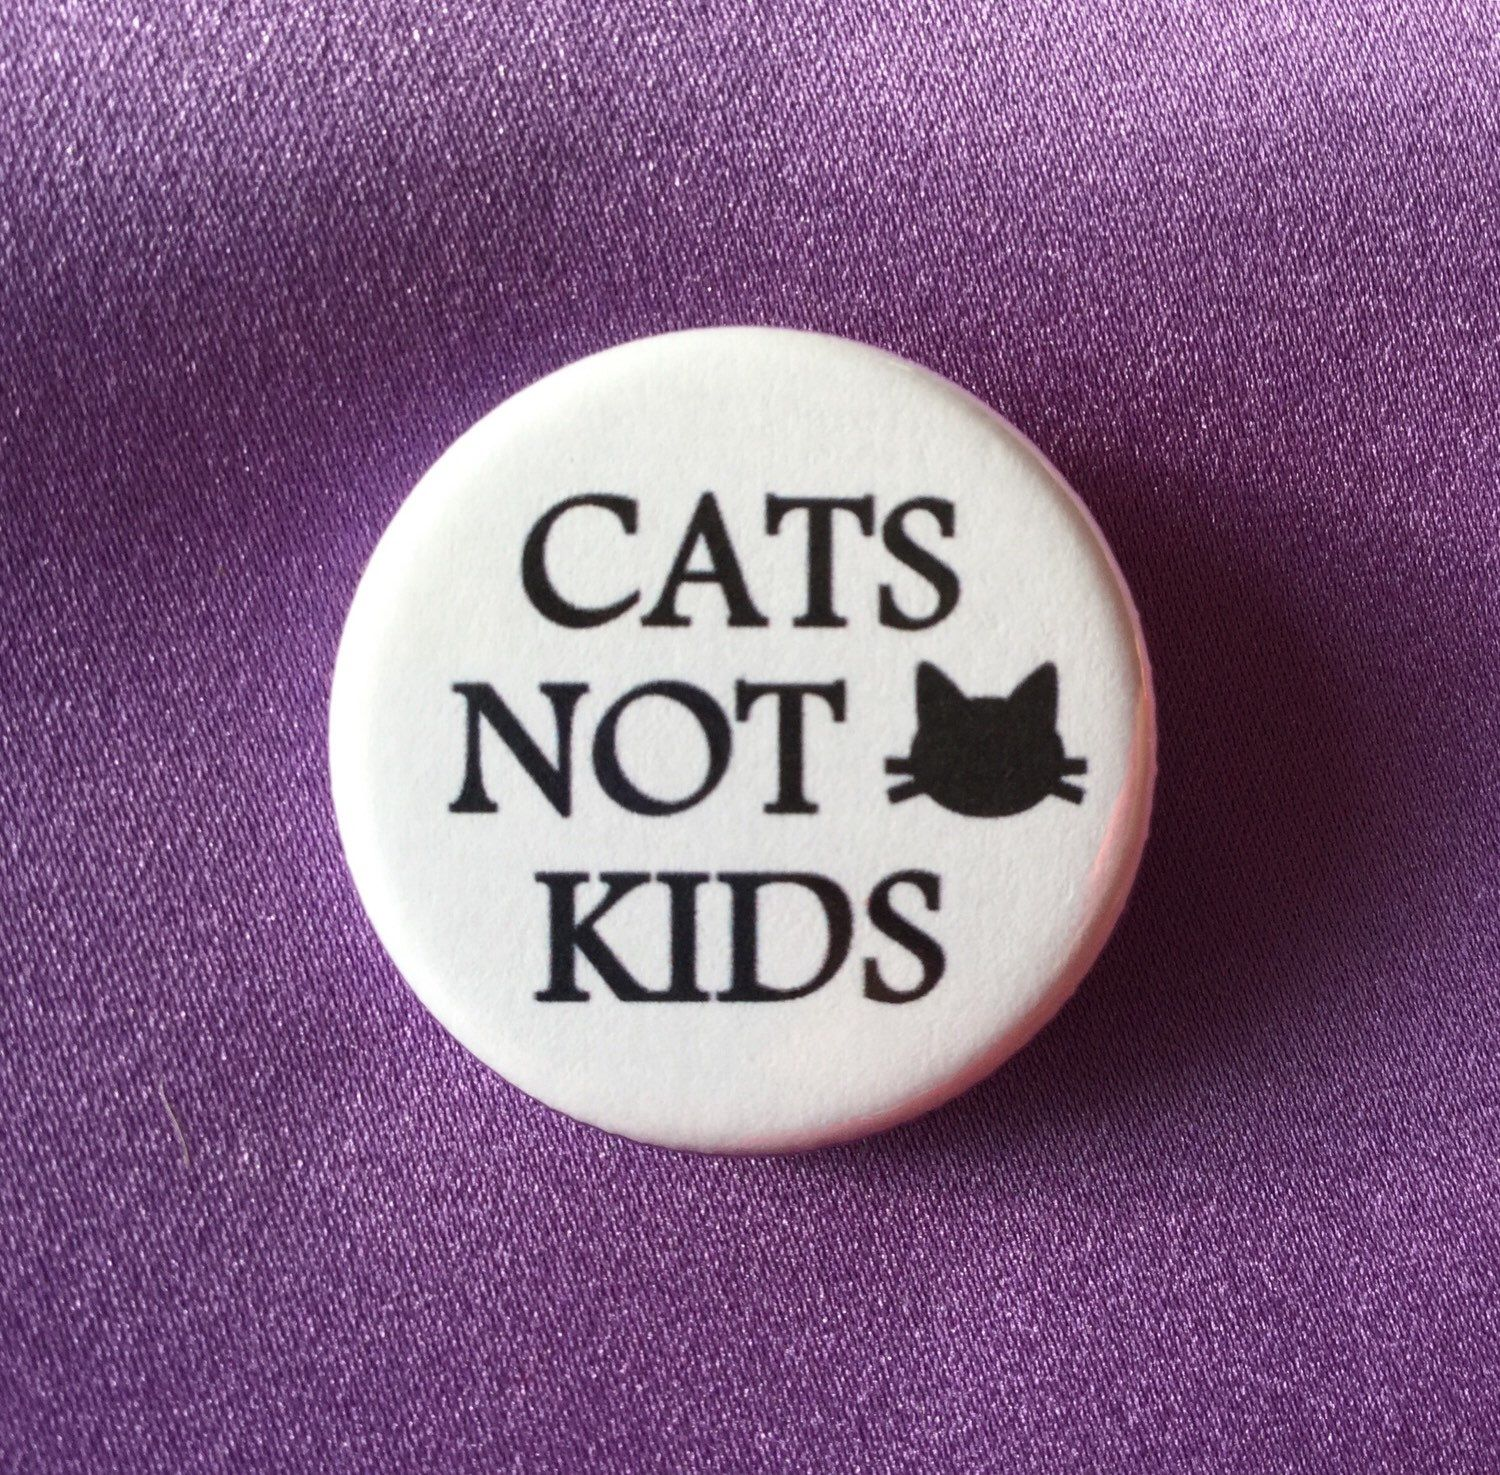 Cute Cats Feed The Cat Reminder Refrigerator Magnet For Cat Owners 2.25 Round